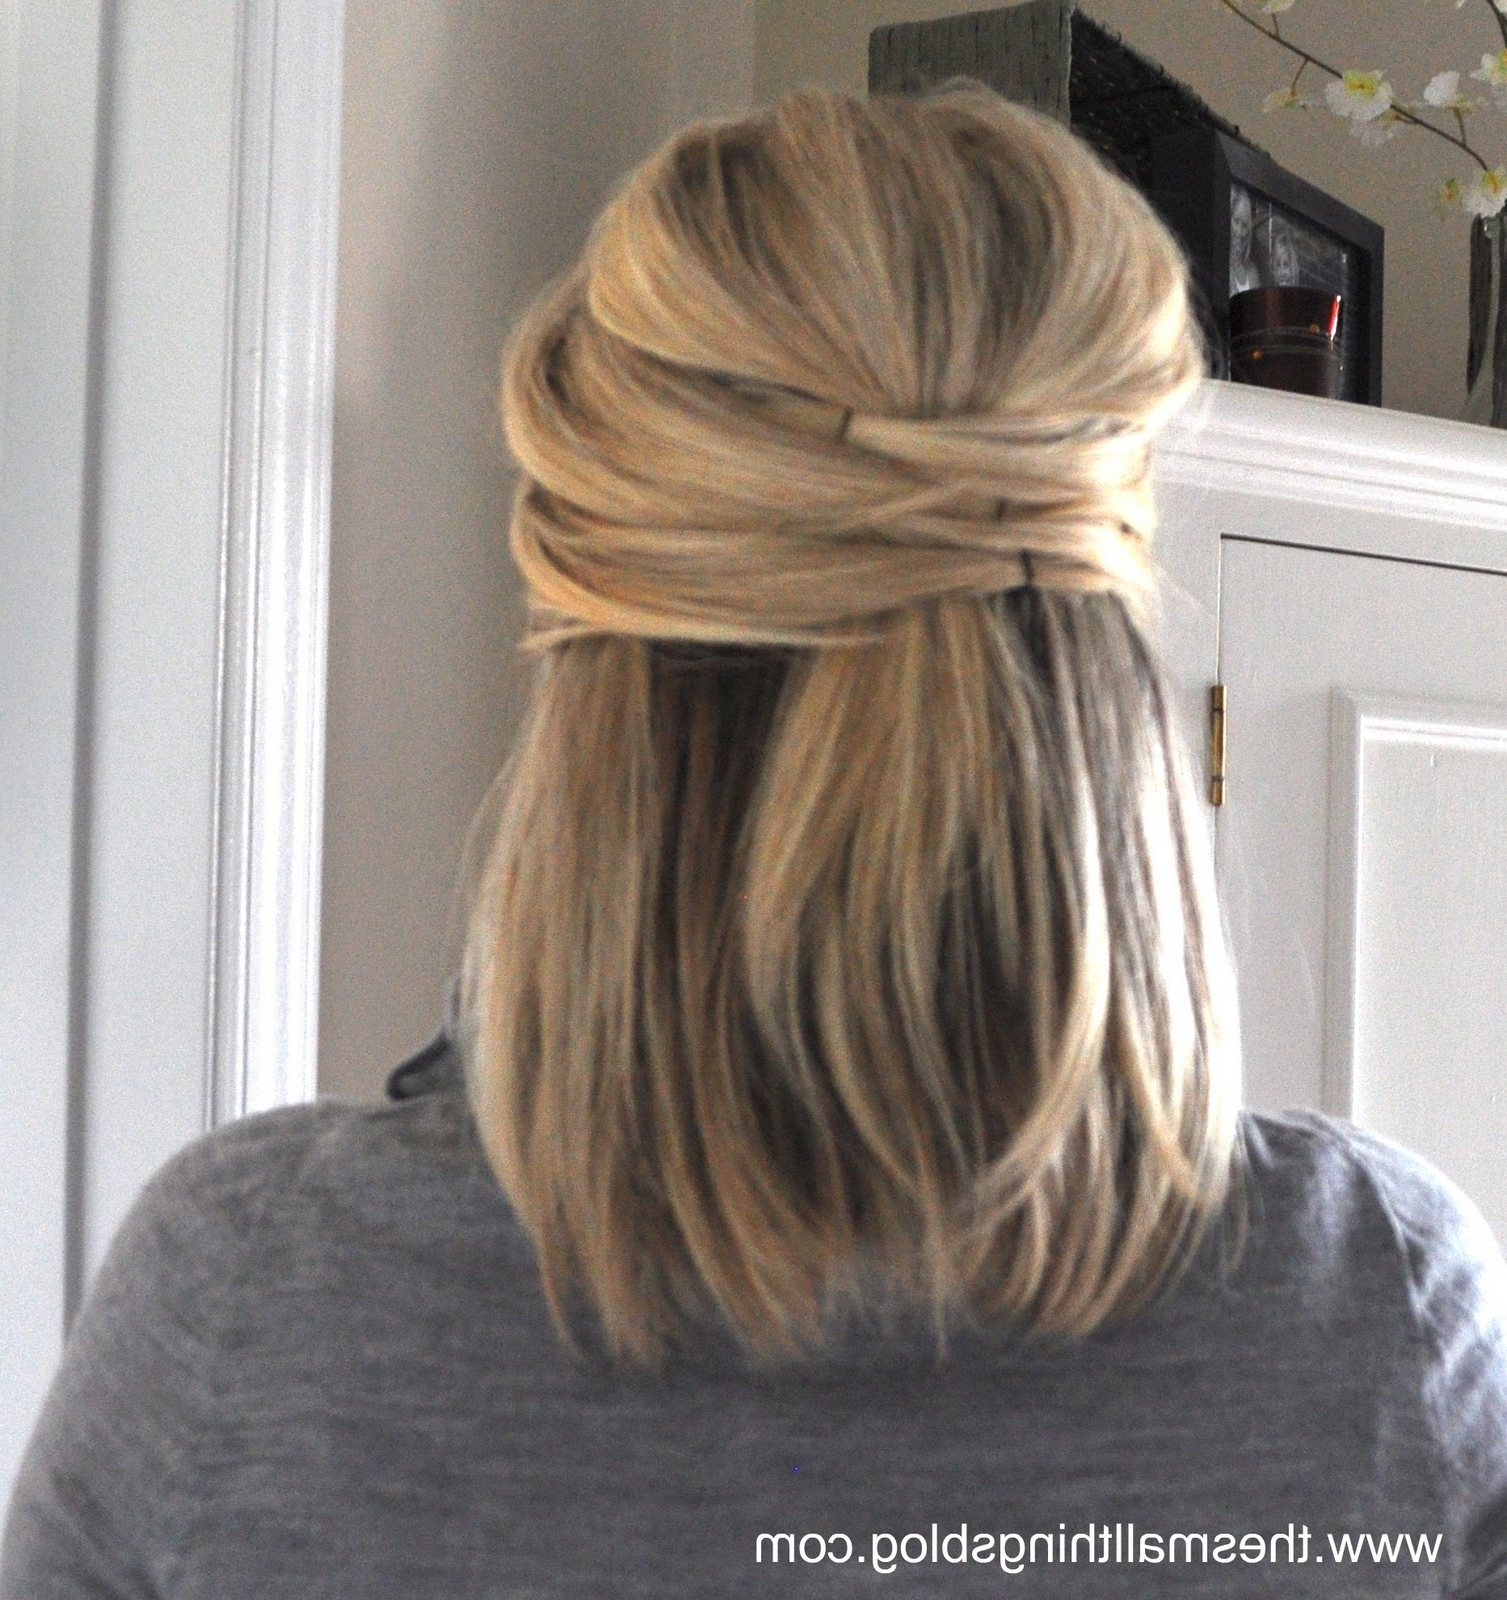 2017 Medium Hairstyles Half Up Pertaining To Half Up Hairstyles For Medium Length Hair – Leymatson (View 9 of 20)